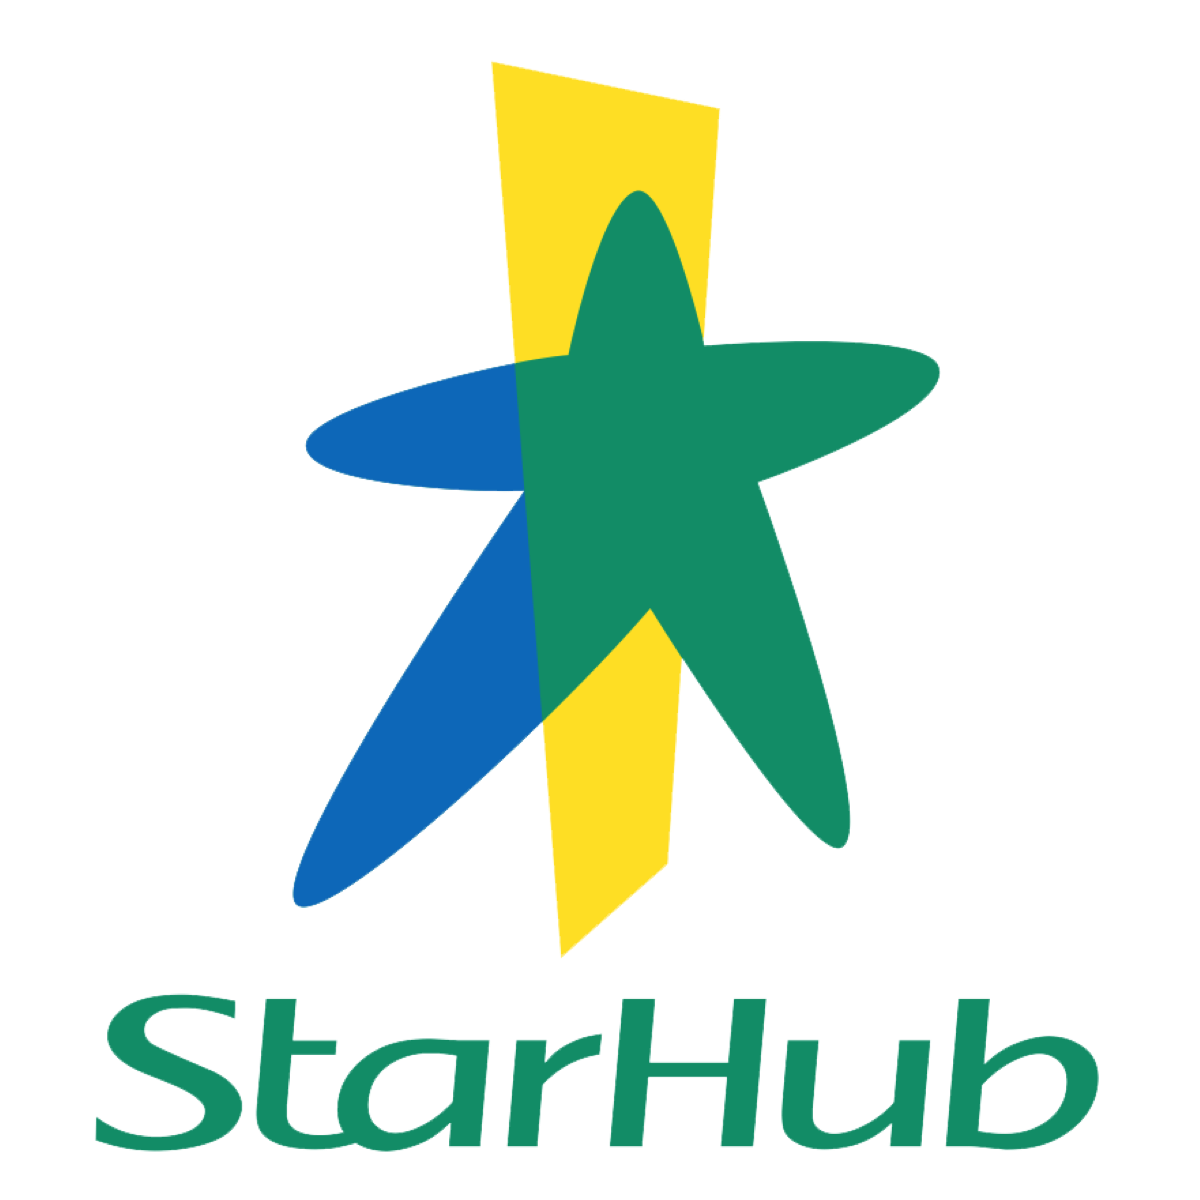 StarHub - CGS-CIMB Research 2018-09-05: Fortifying The Cyber Security Business